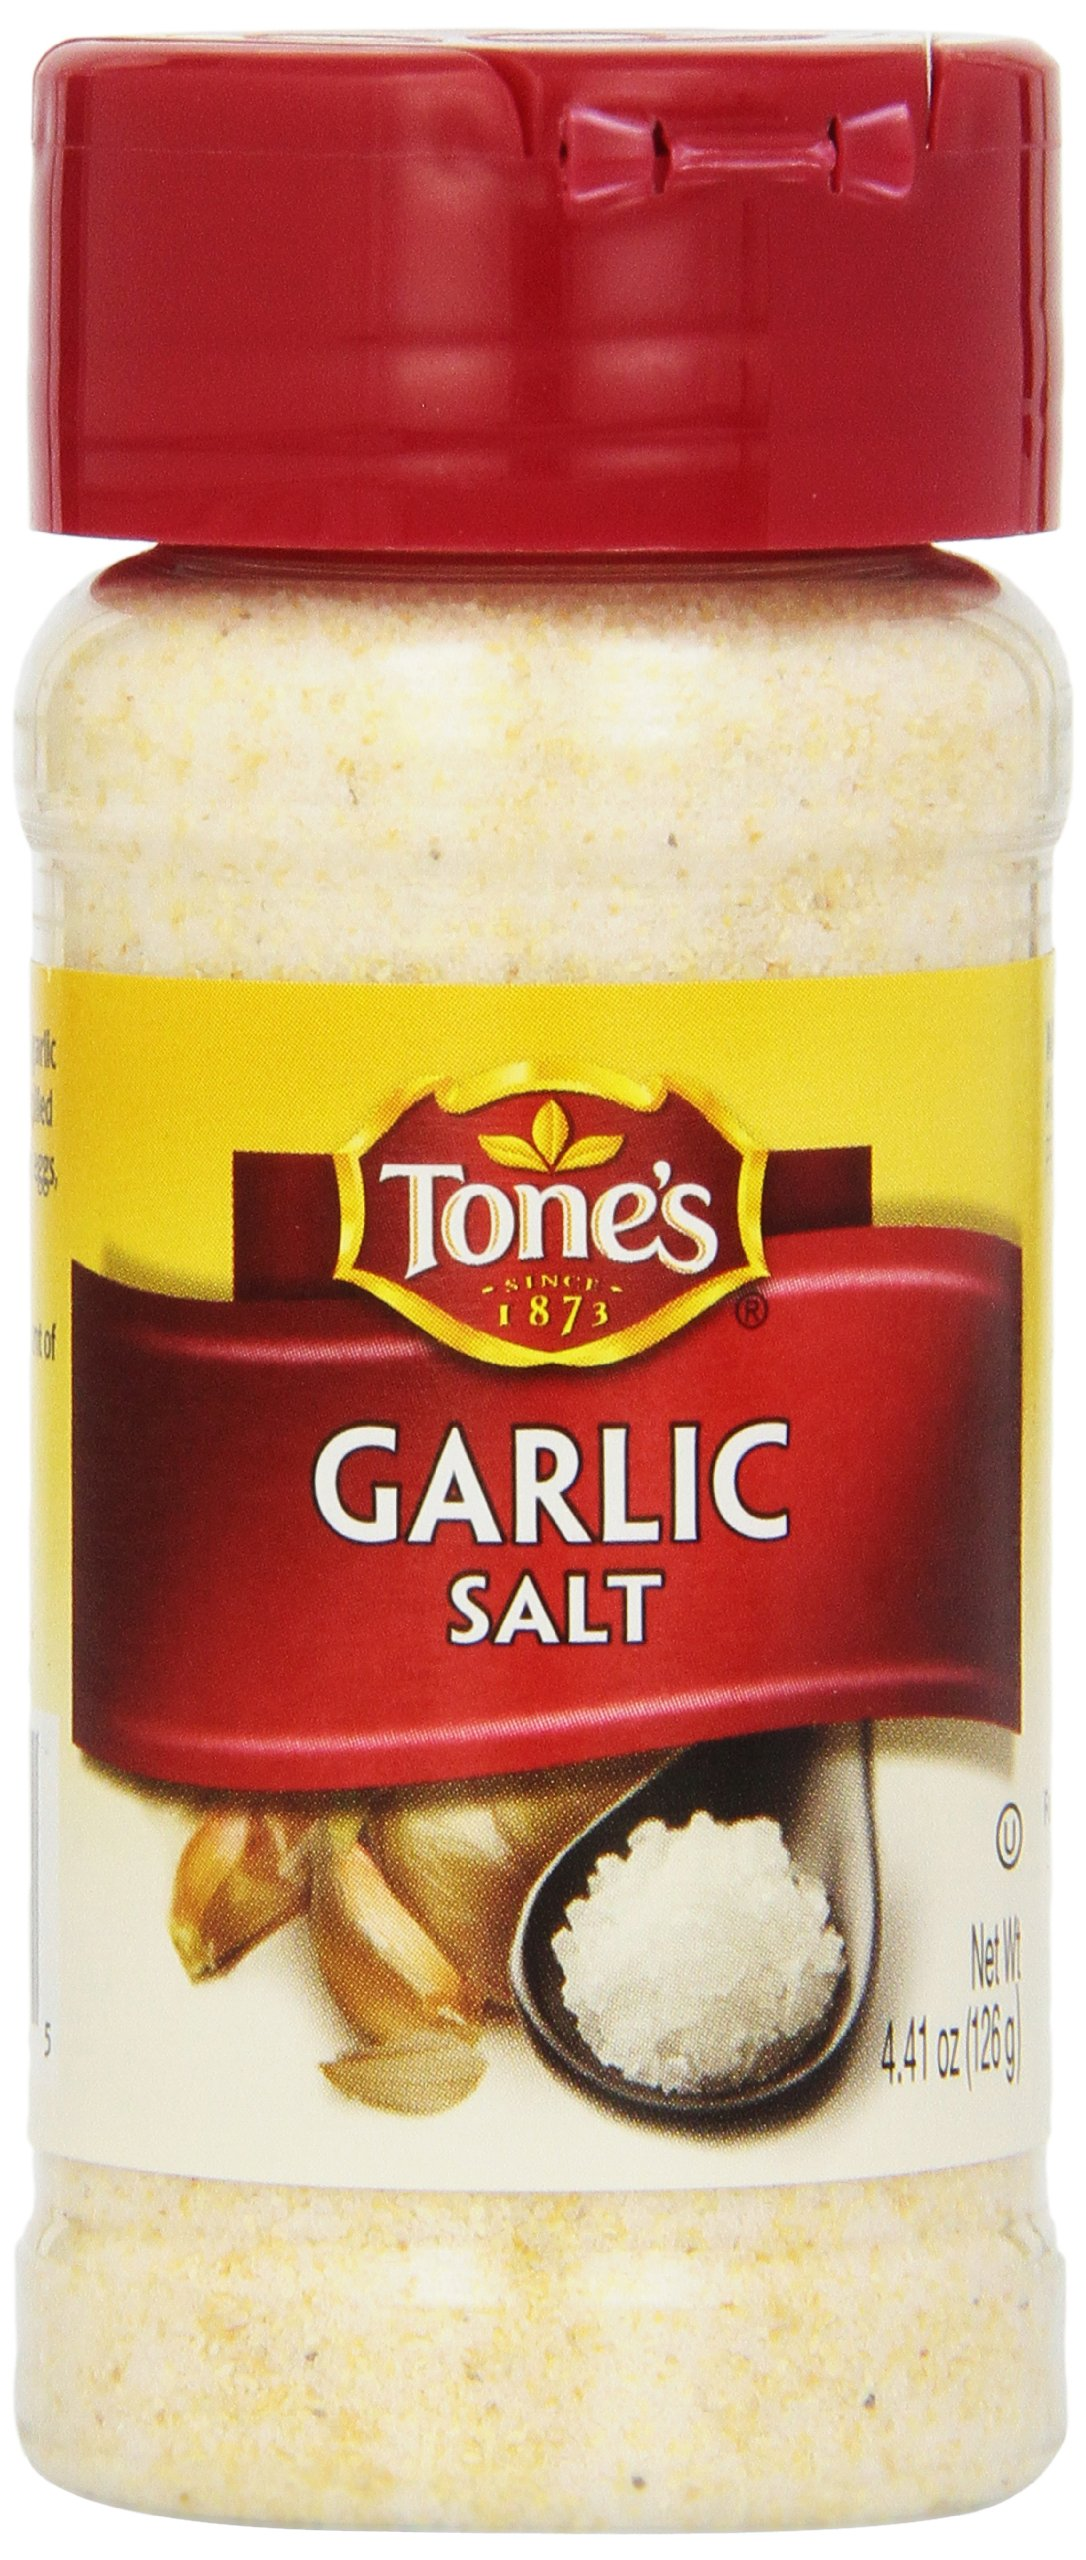 Tone Garlic Salt, 4.41 Ounce (Pack of 6)